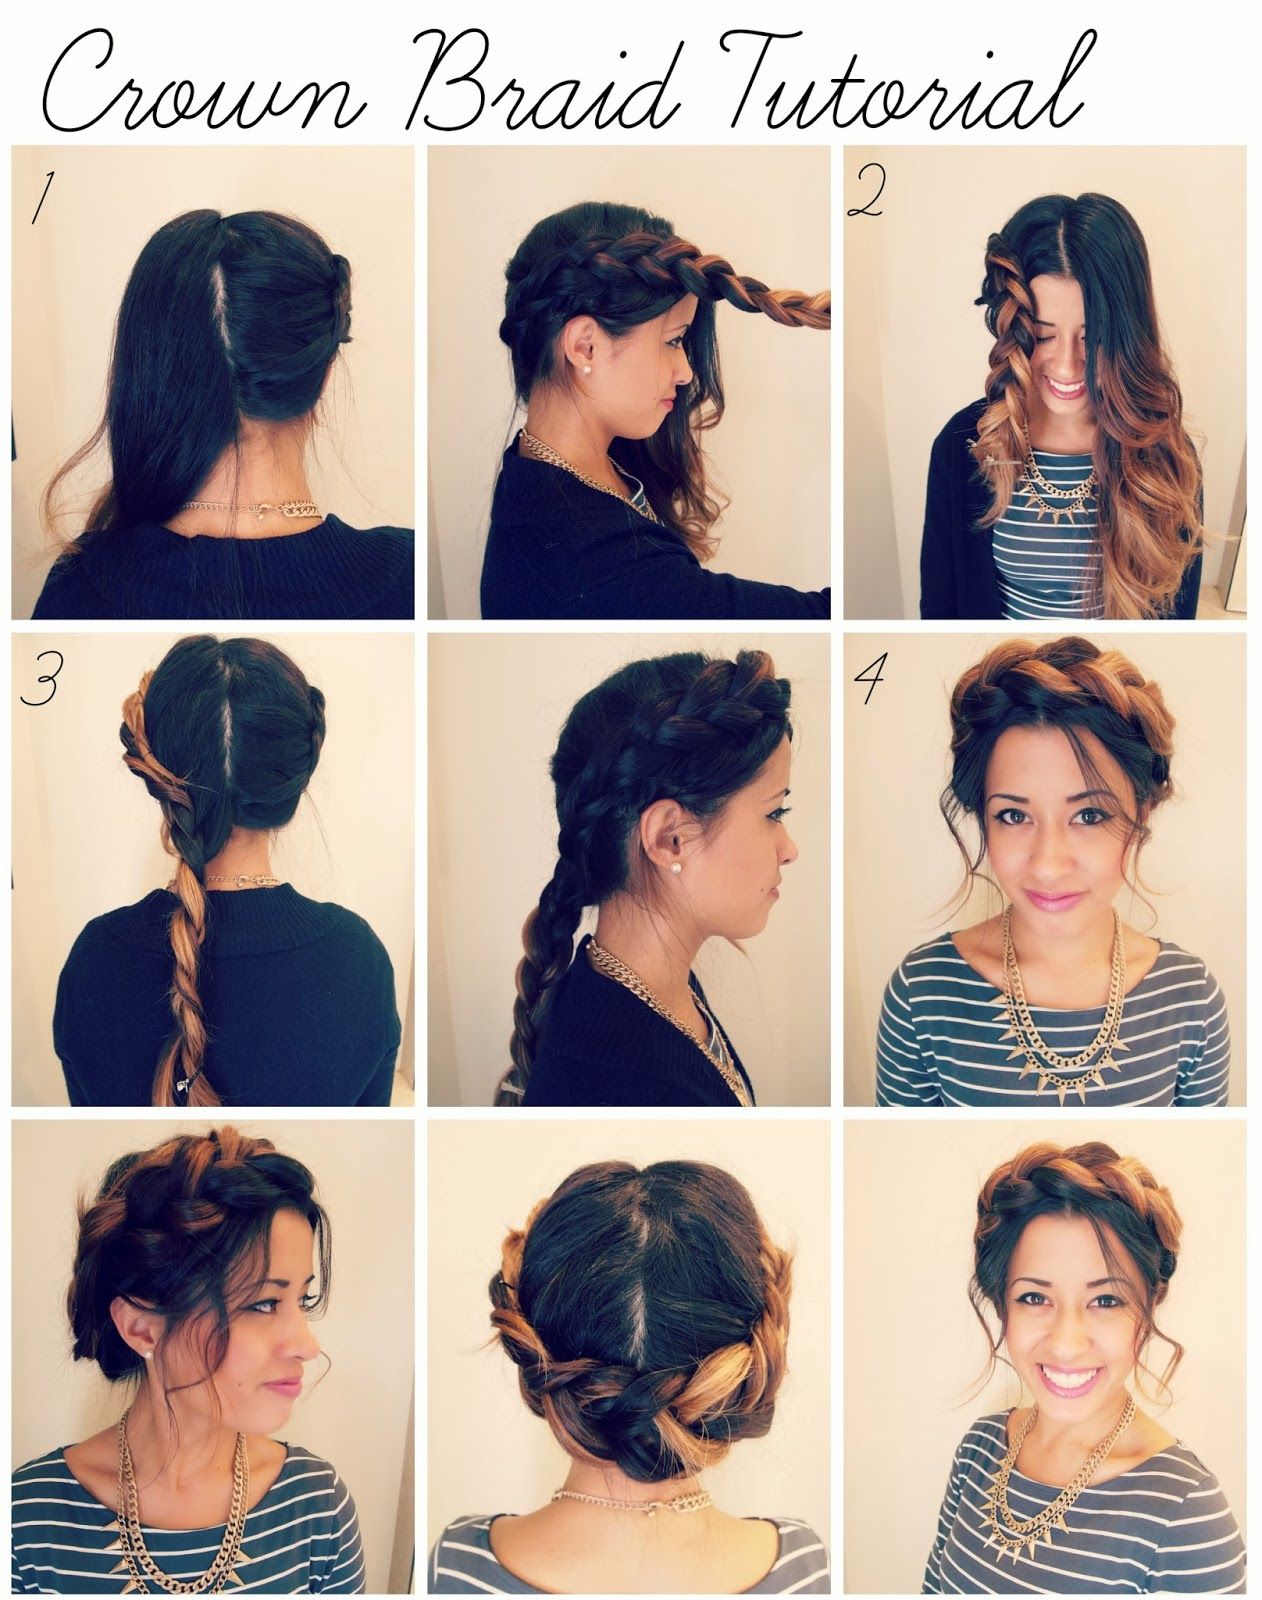 06 Cute Braided Hairstyles For Girls Braided Crown Hairstyles